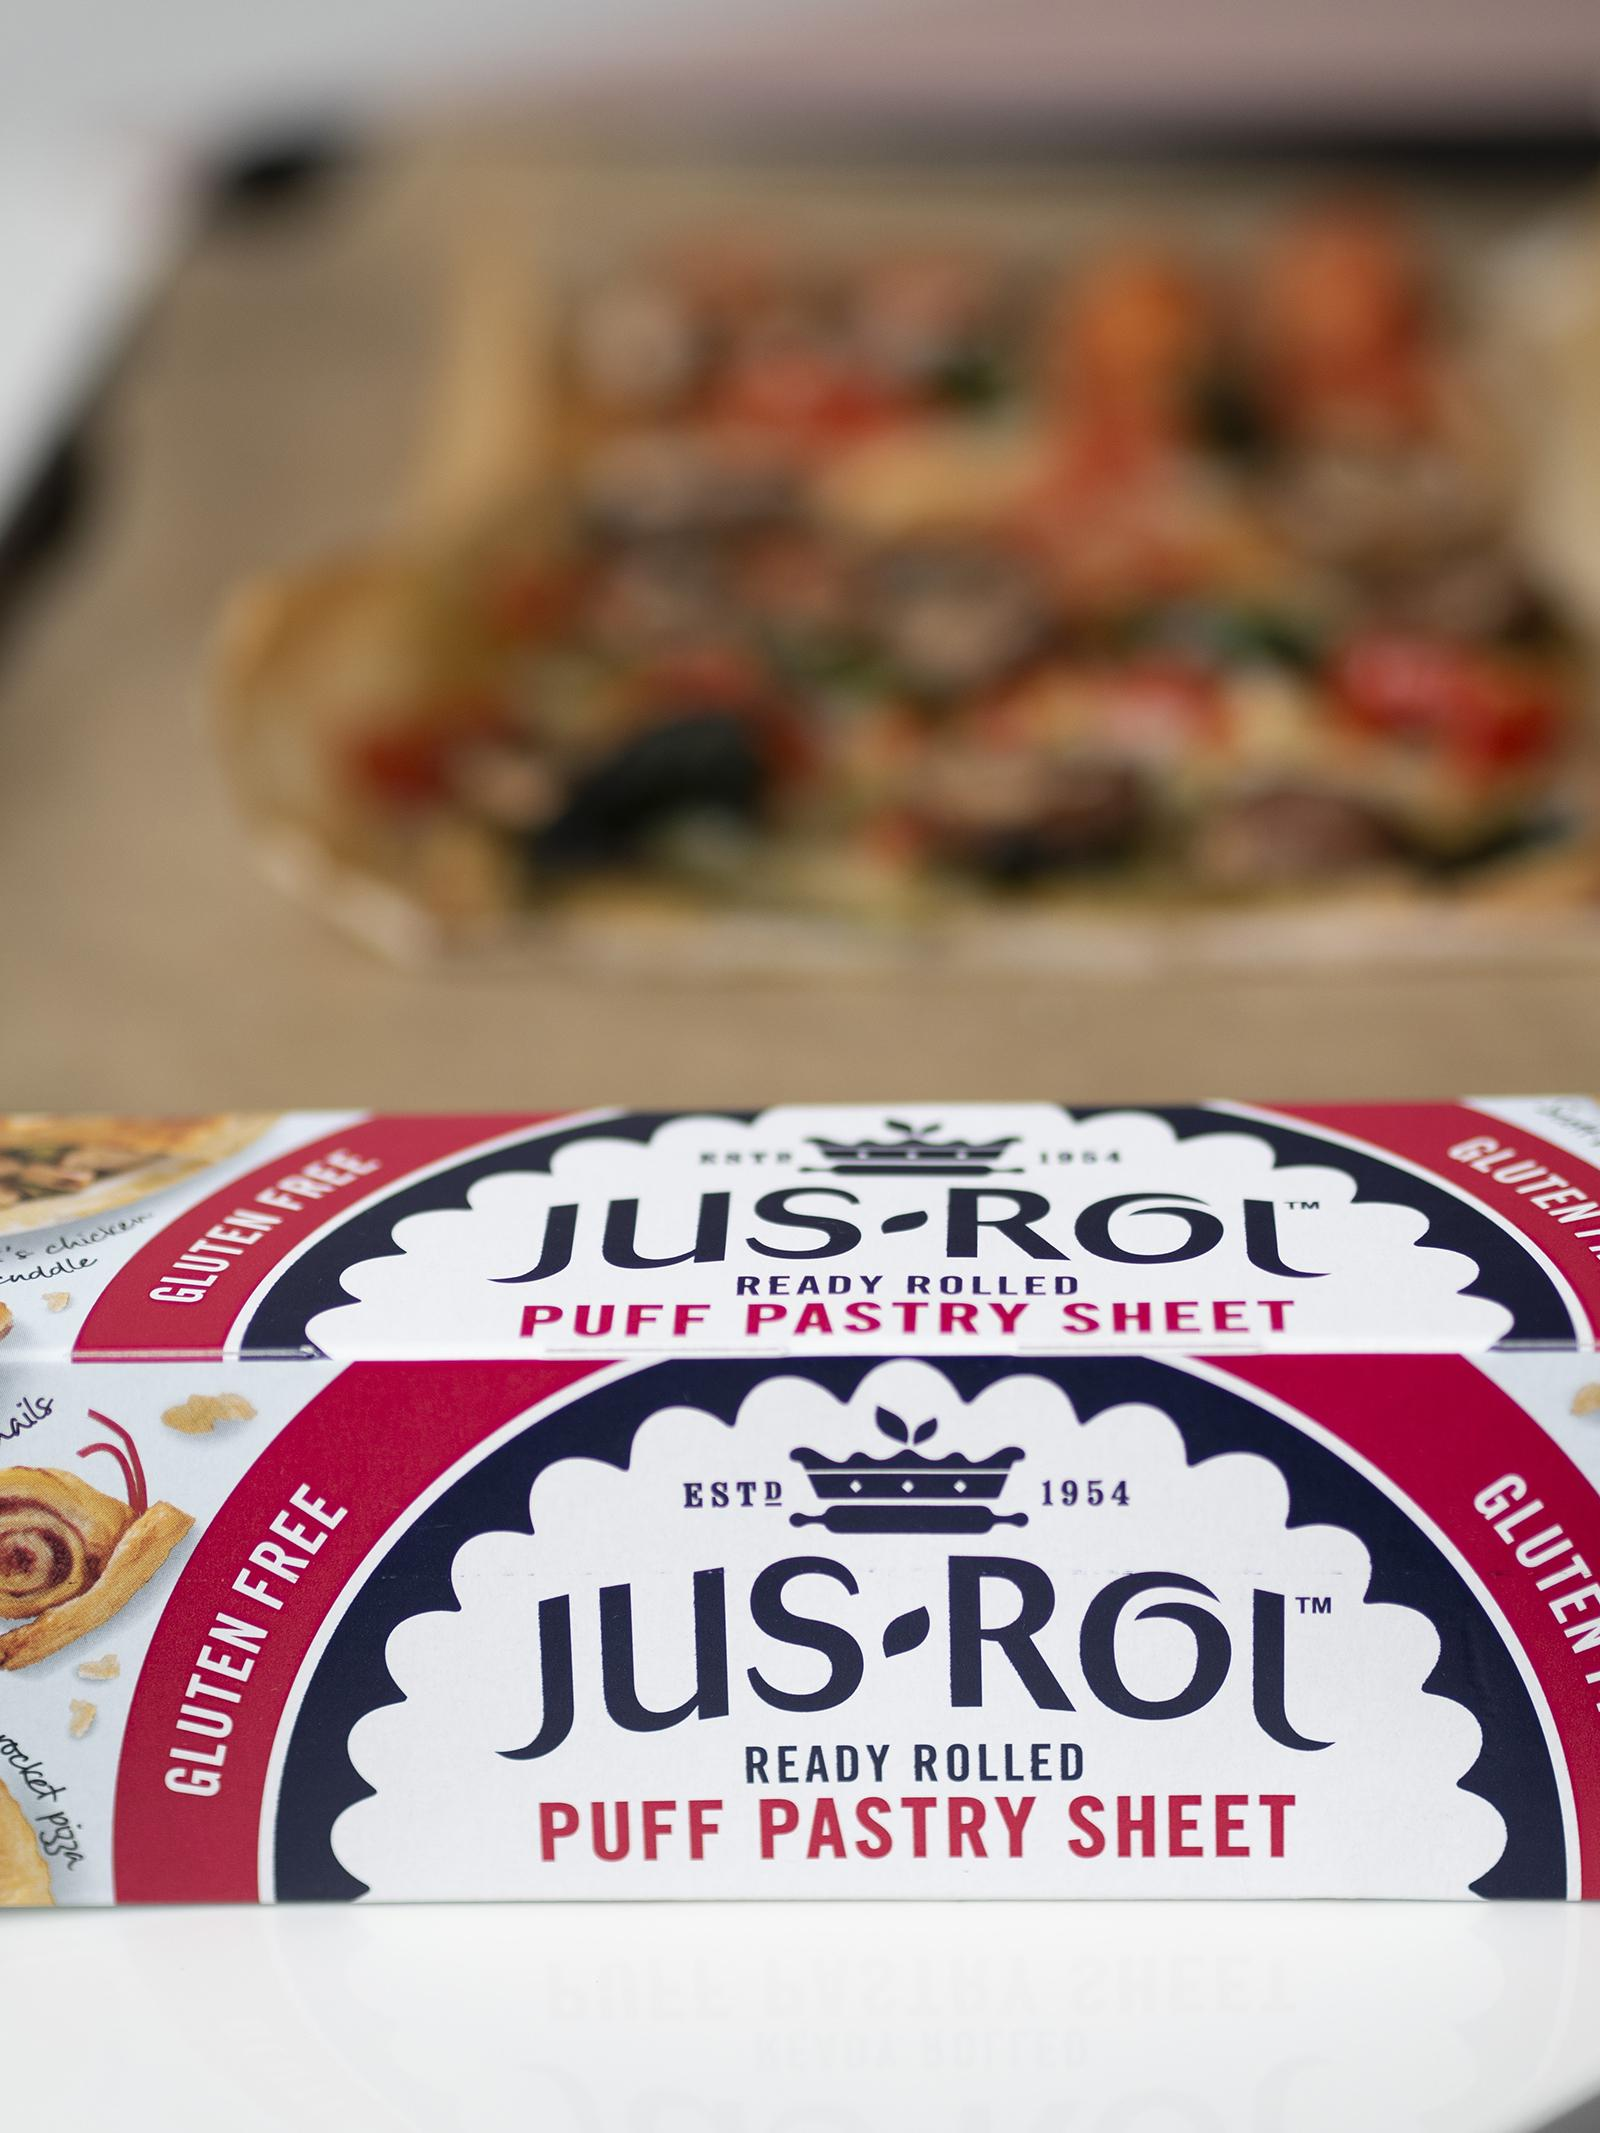 Picture of Jus Roll Ready Rolled Pastry Sheet packet